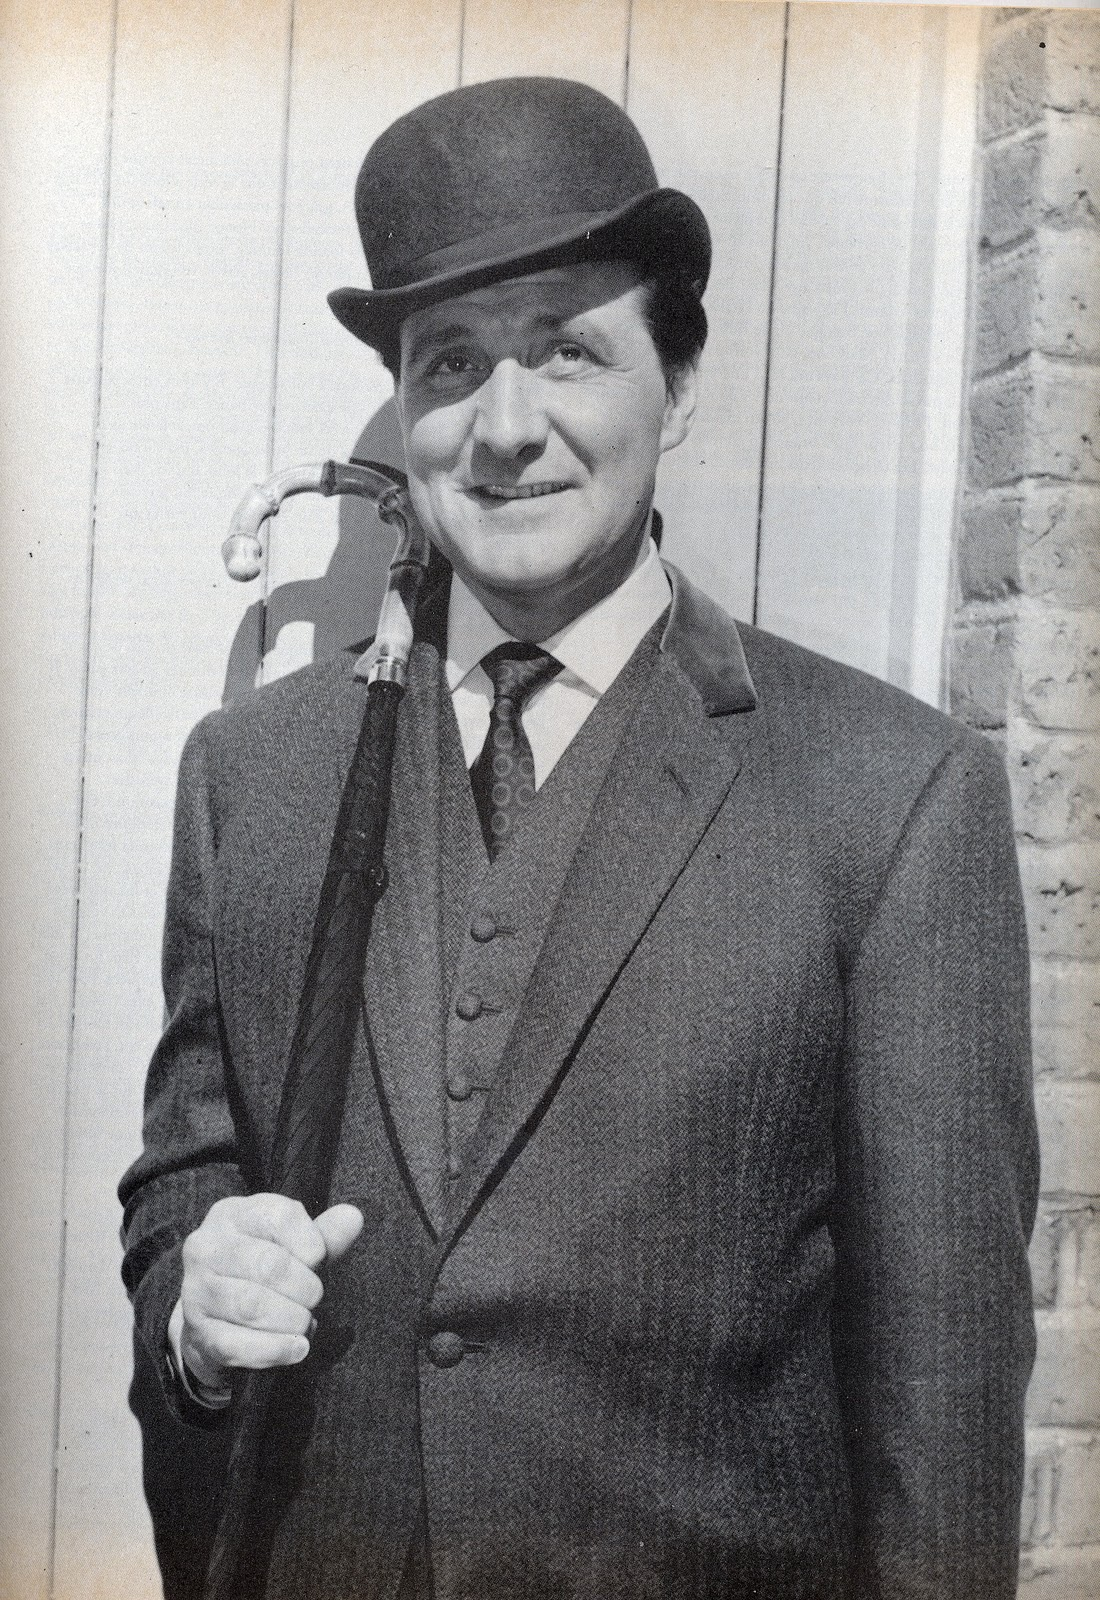 patrick macnee oasispatrick macnee actor, patrick macnee death, patrick macnee and diana rigg, patrick macnee wiki, patrick macnee 2014, patrick macnee avengers, patrick macnee ghost stories, patrick macnee 2012, patrick macnee died, patrick macnee imdb, patrick macnee funeral, patrick macnee mort, patrick macnee obituary, patrick macnee health, patrick macnee gestorben, patrick macnee net worth, patrick macnee nudist, patrick macnee autobiography, patrick macnee oasis, patrick macnee height